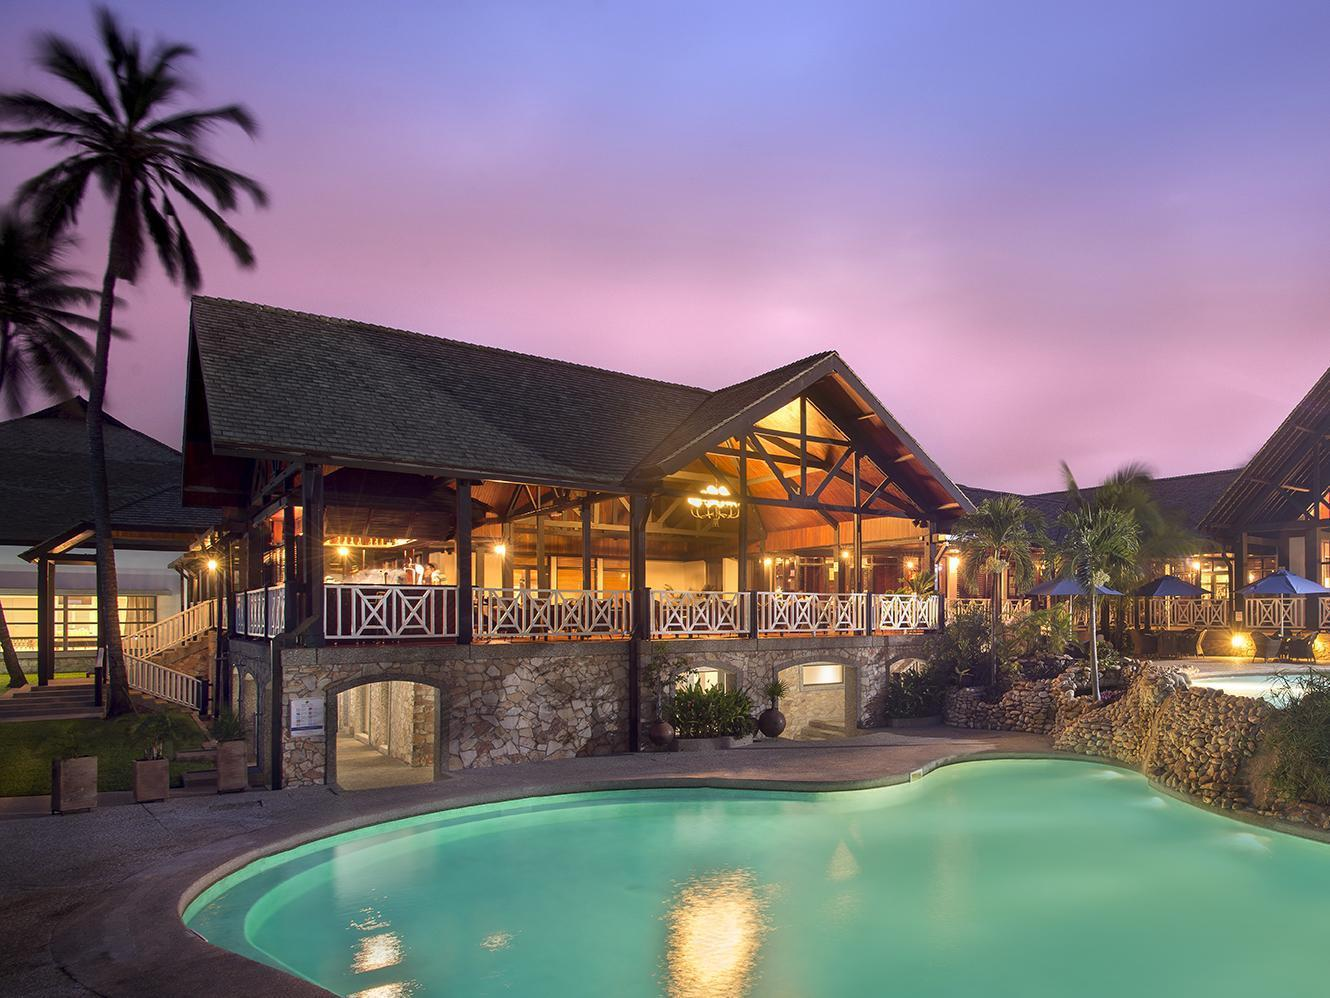 Four and five star hotels in accra you need to know about for Luxury hotels near